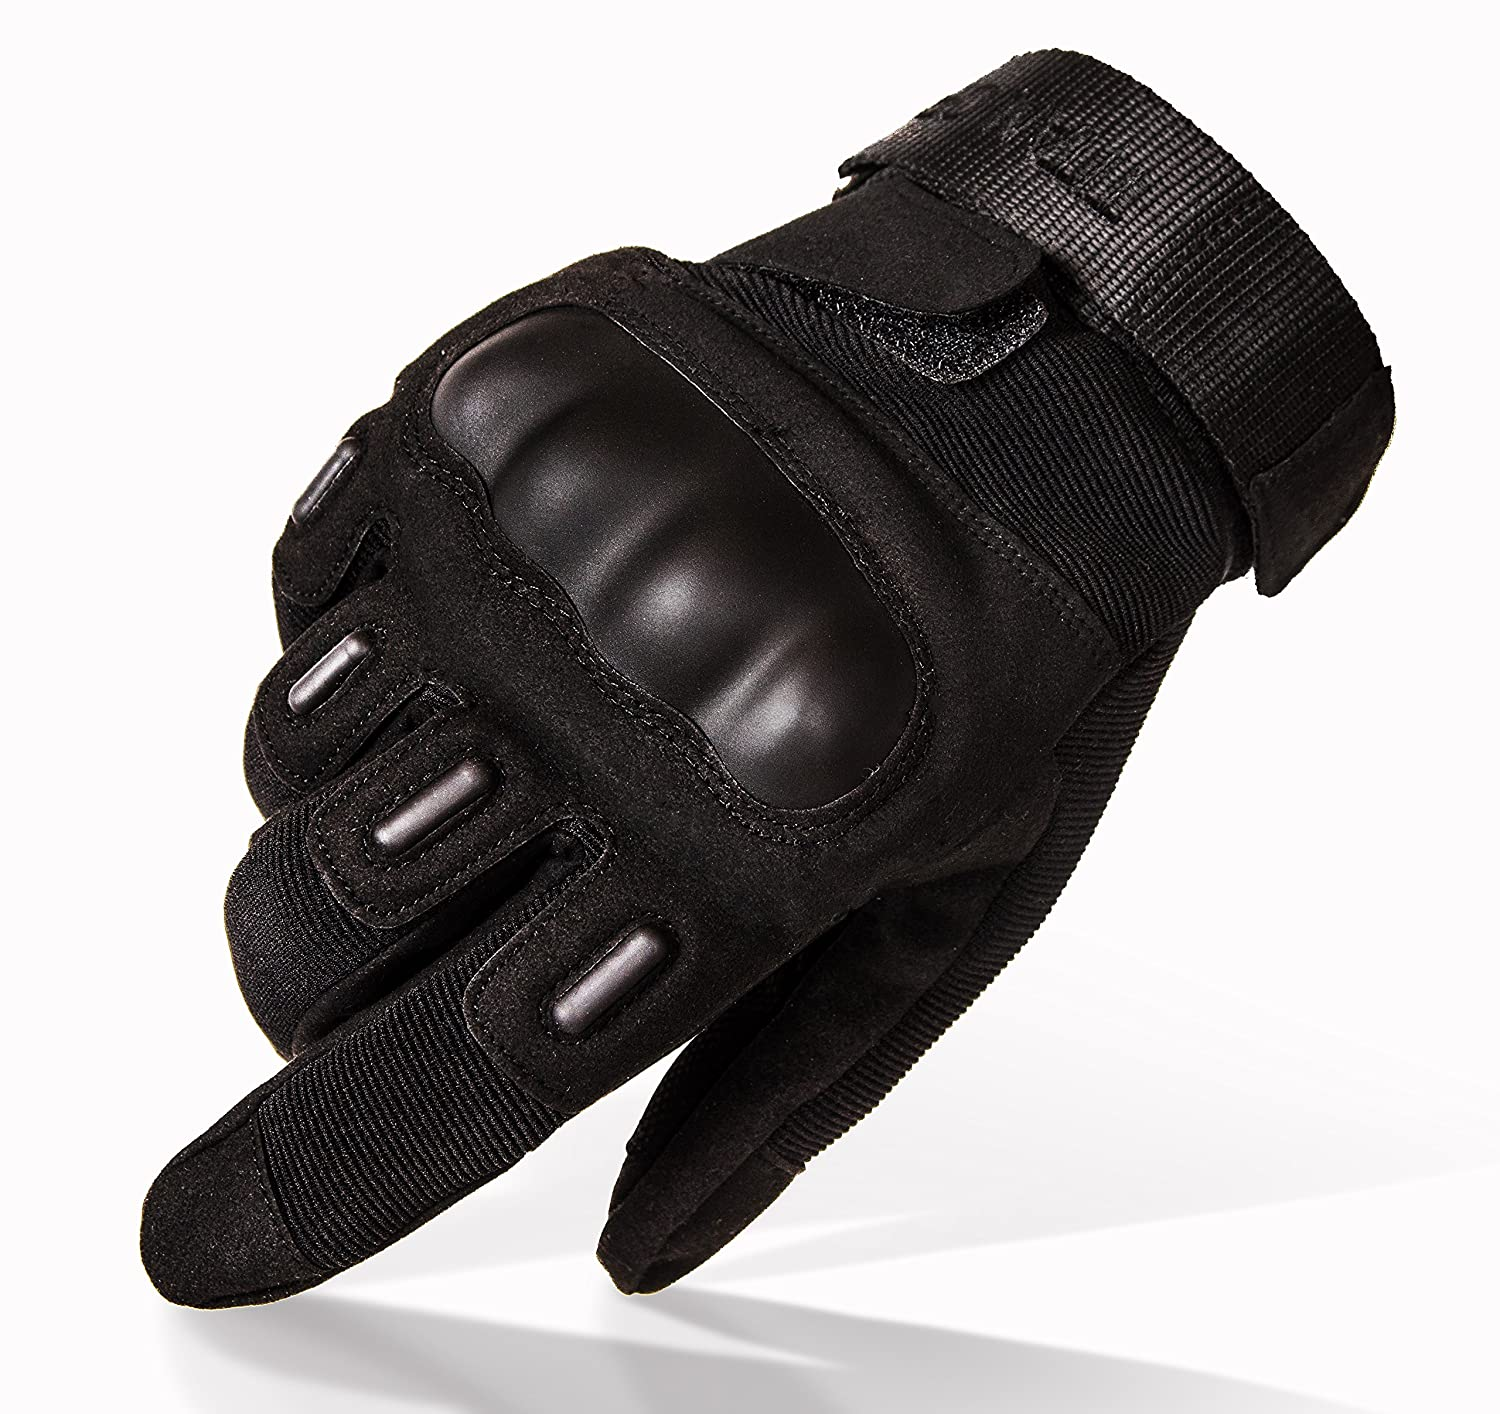 TitanOPS Hard Knuckle Motorcycle Military Tactical Combat Training Gloves